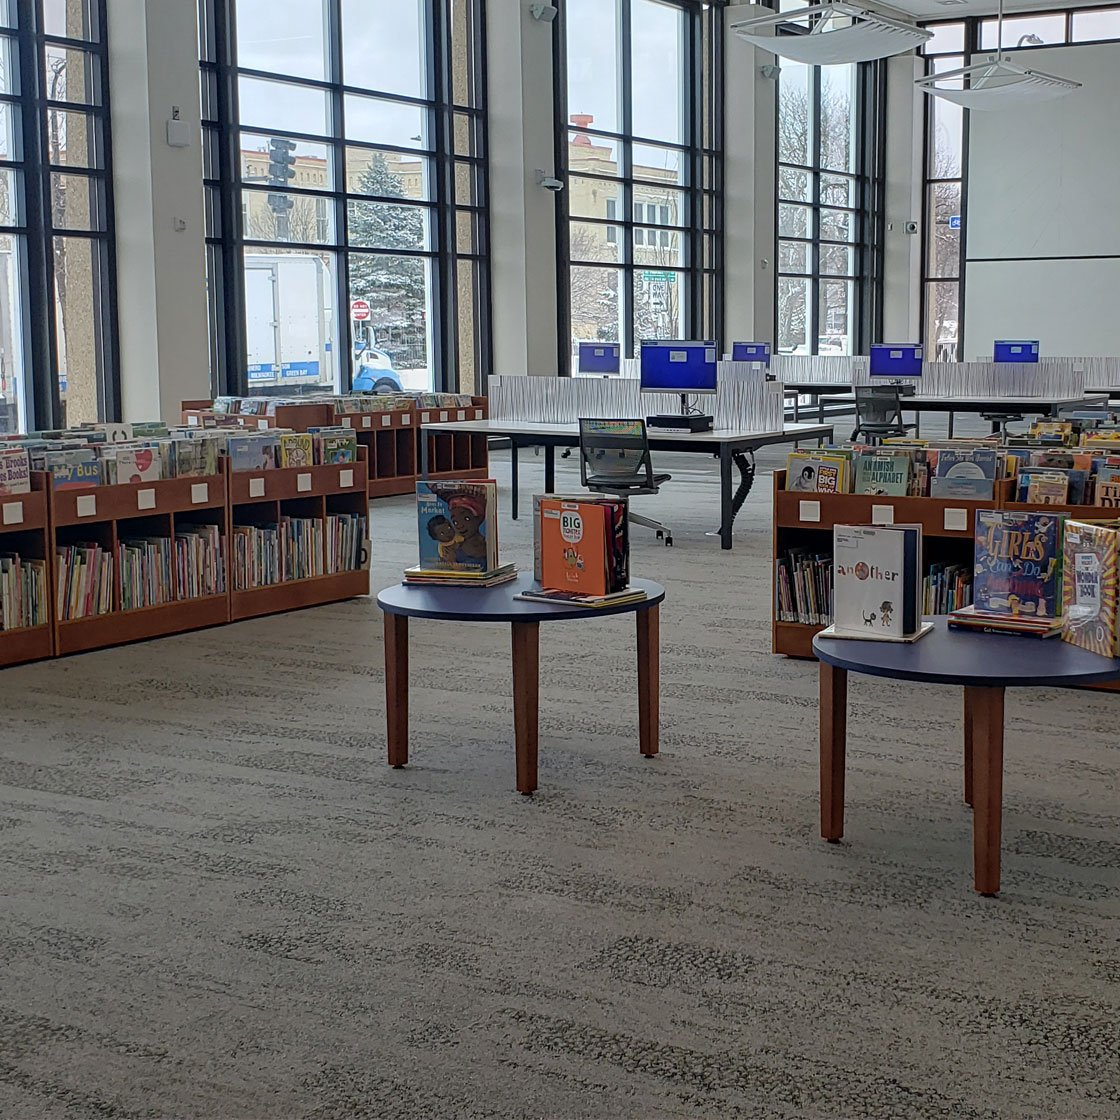 Library display of books and tables.